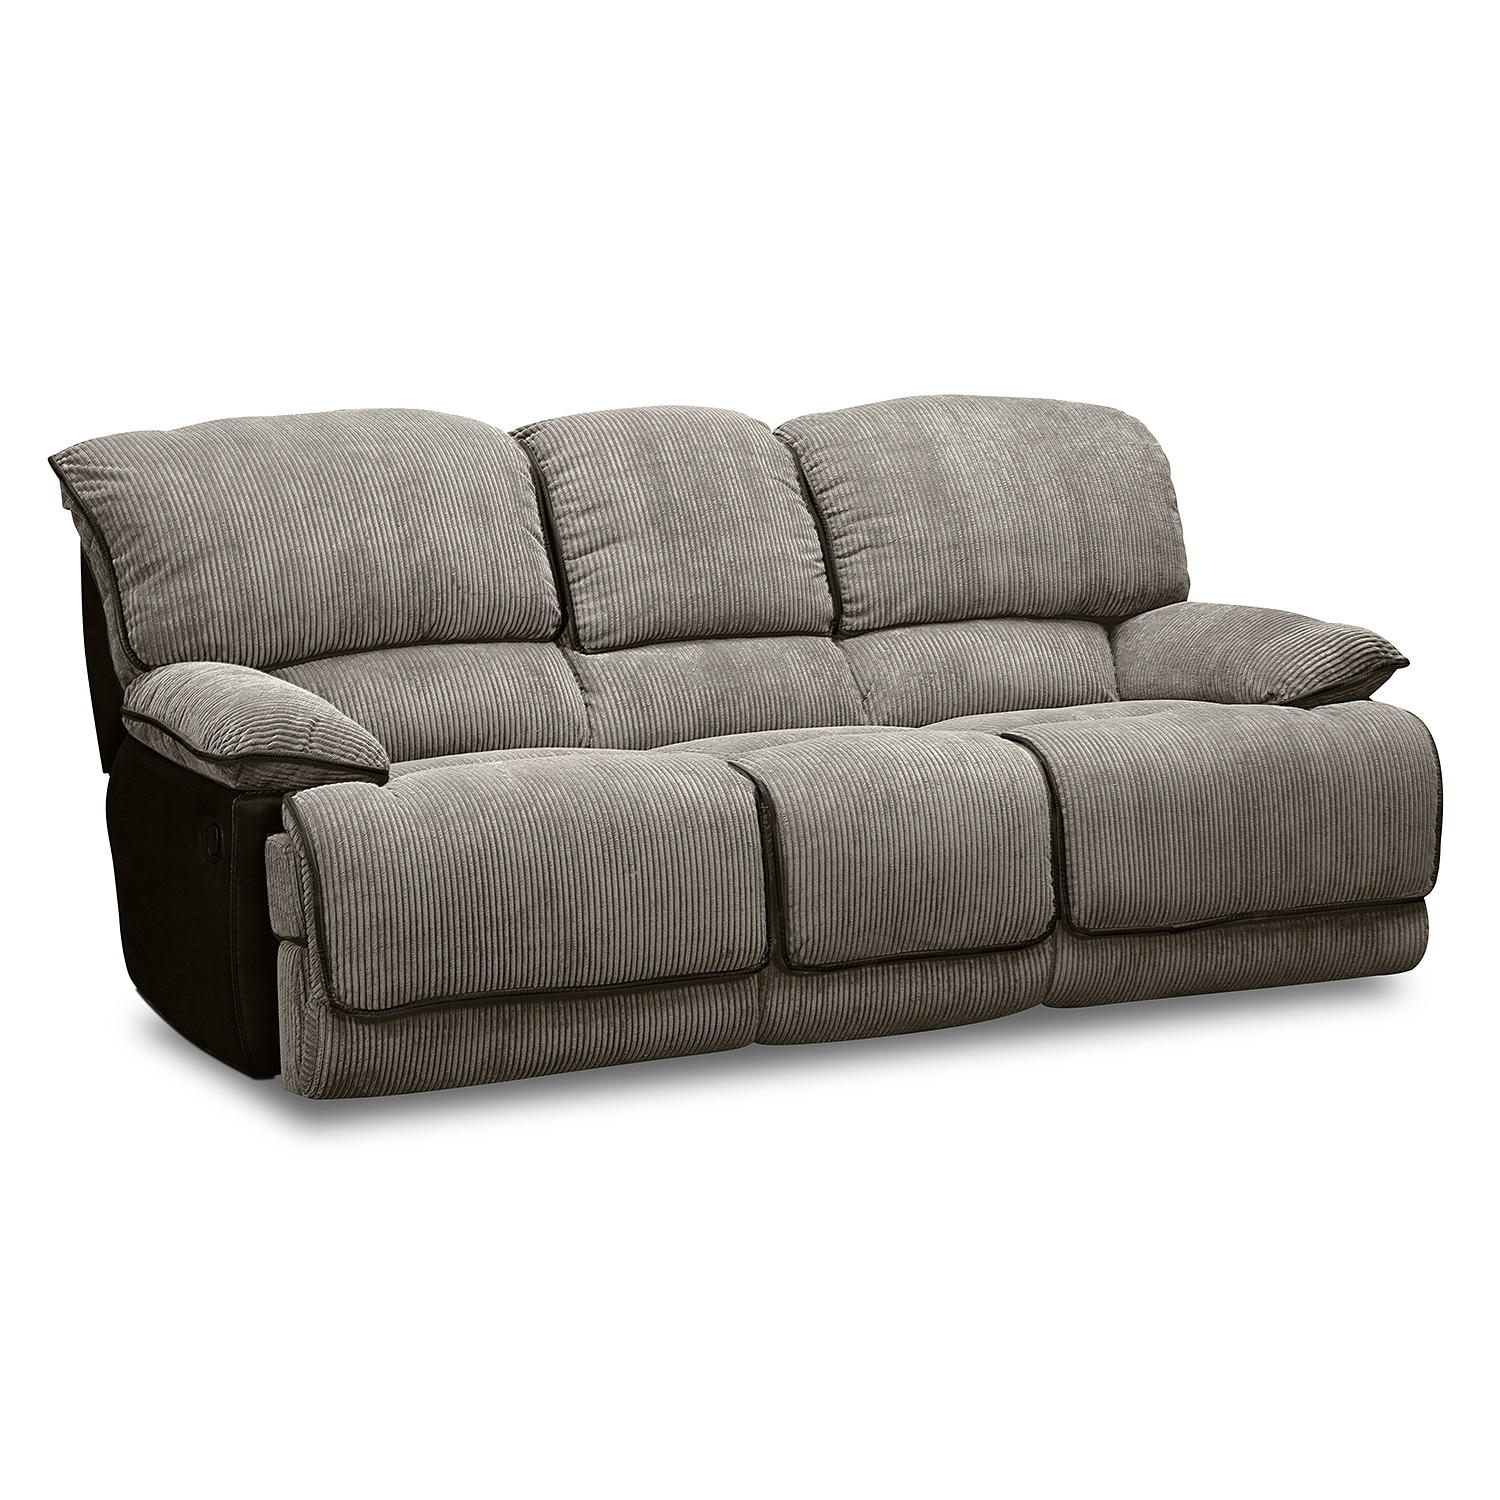 Putnam Steel Dual Reclining Sofa Furniturecom : 270250 from www.furniture.com size 1500 x 1500 jpeg 352kB